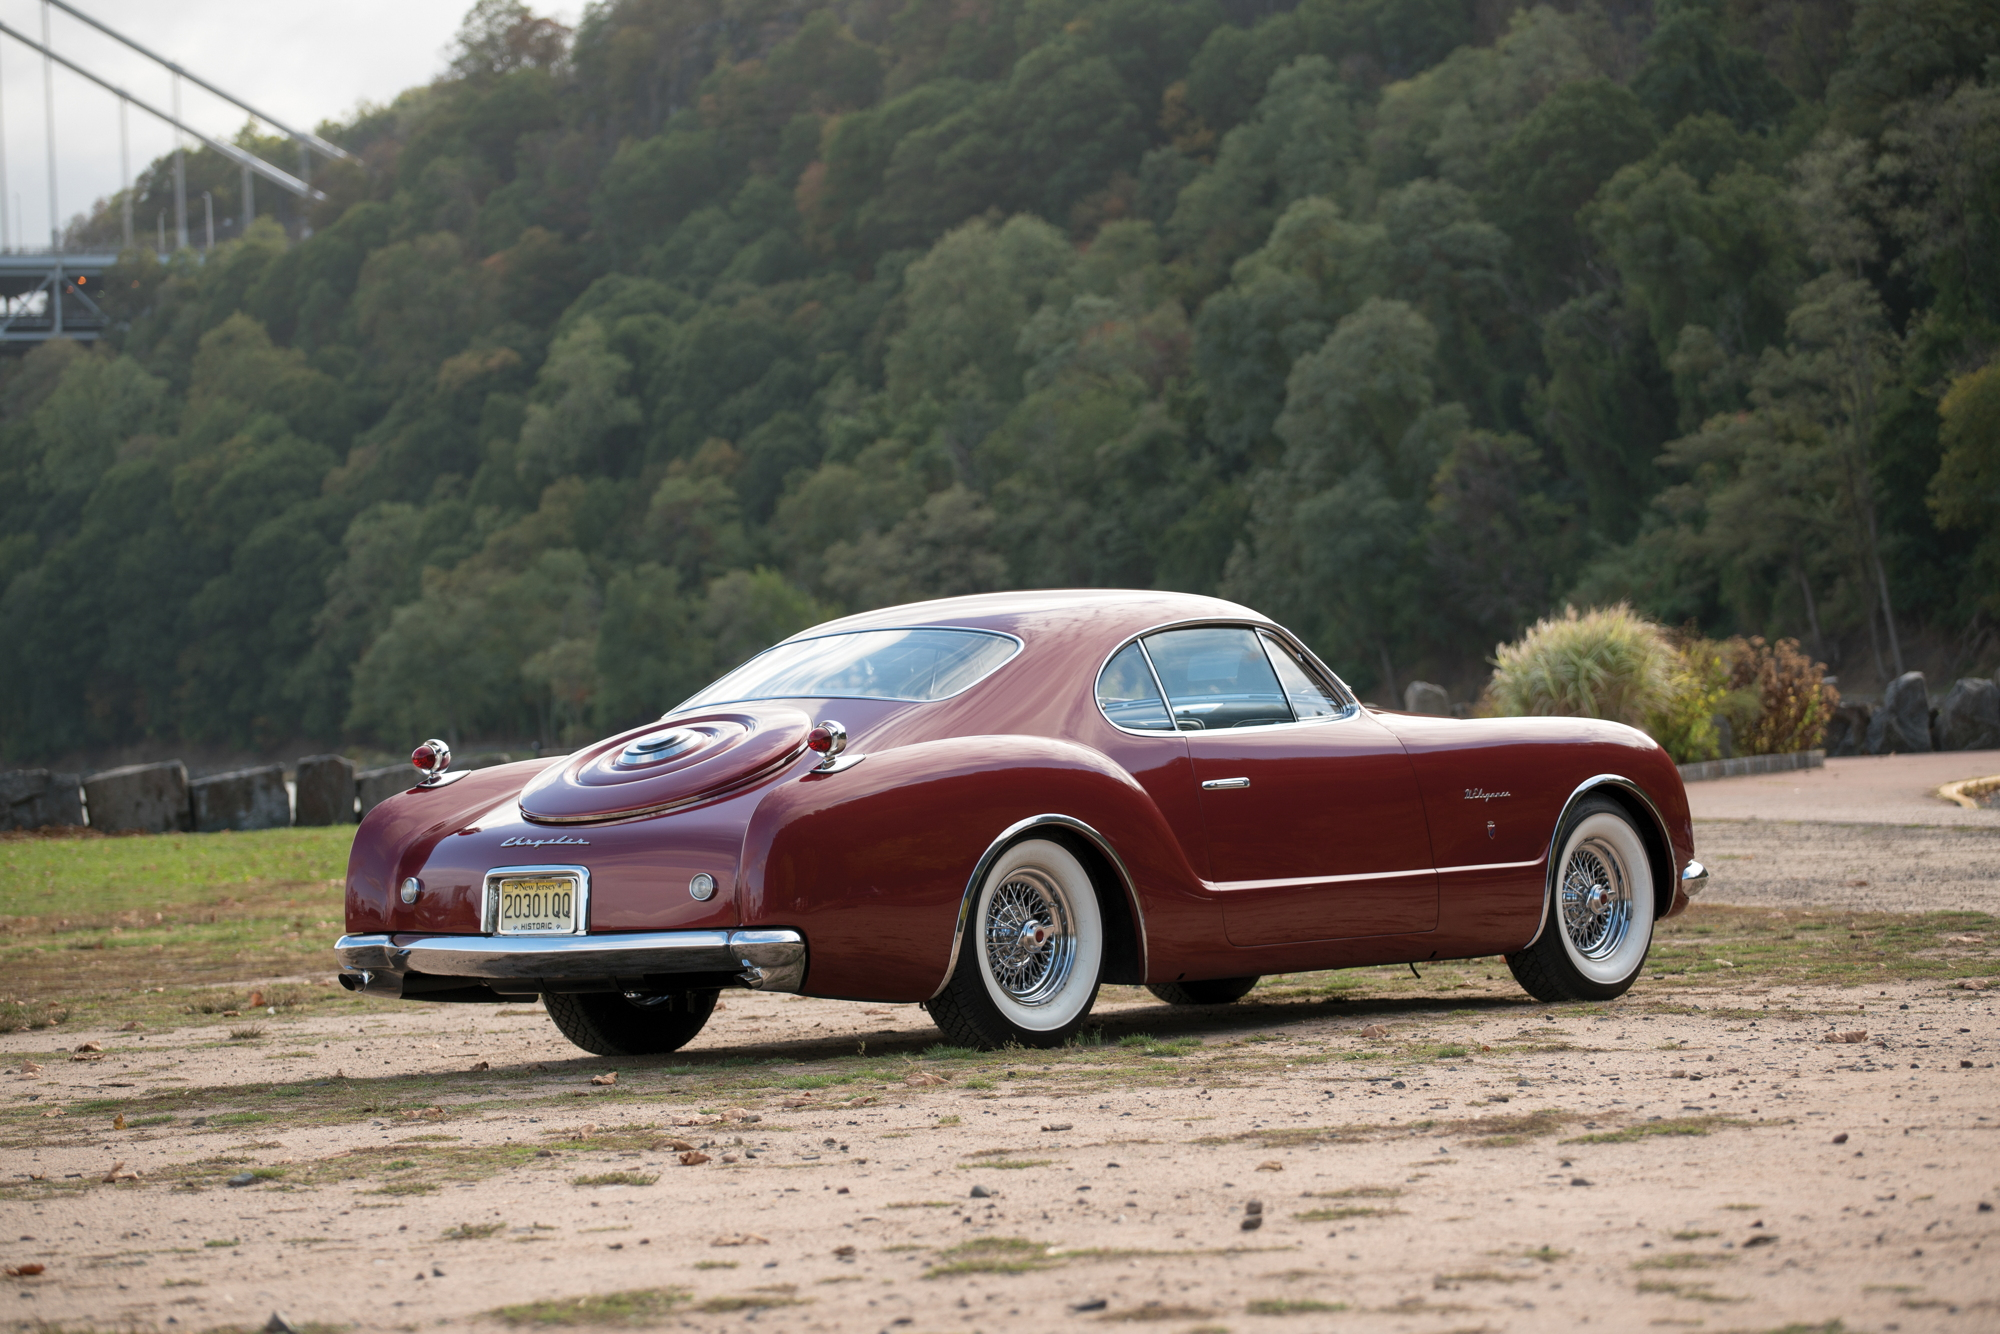 1952 Chrysler D'Elegance by Ghia rear